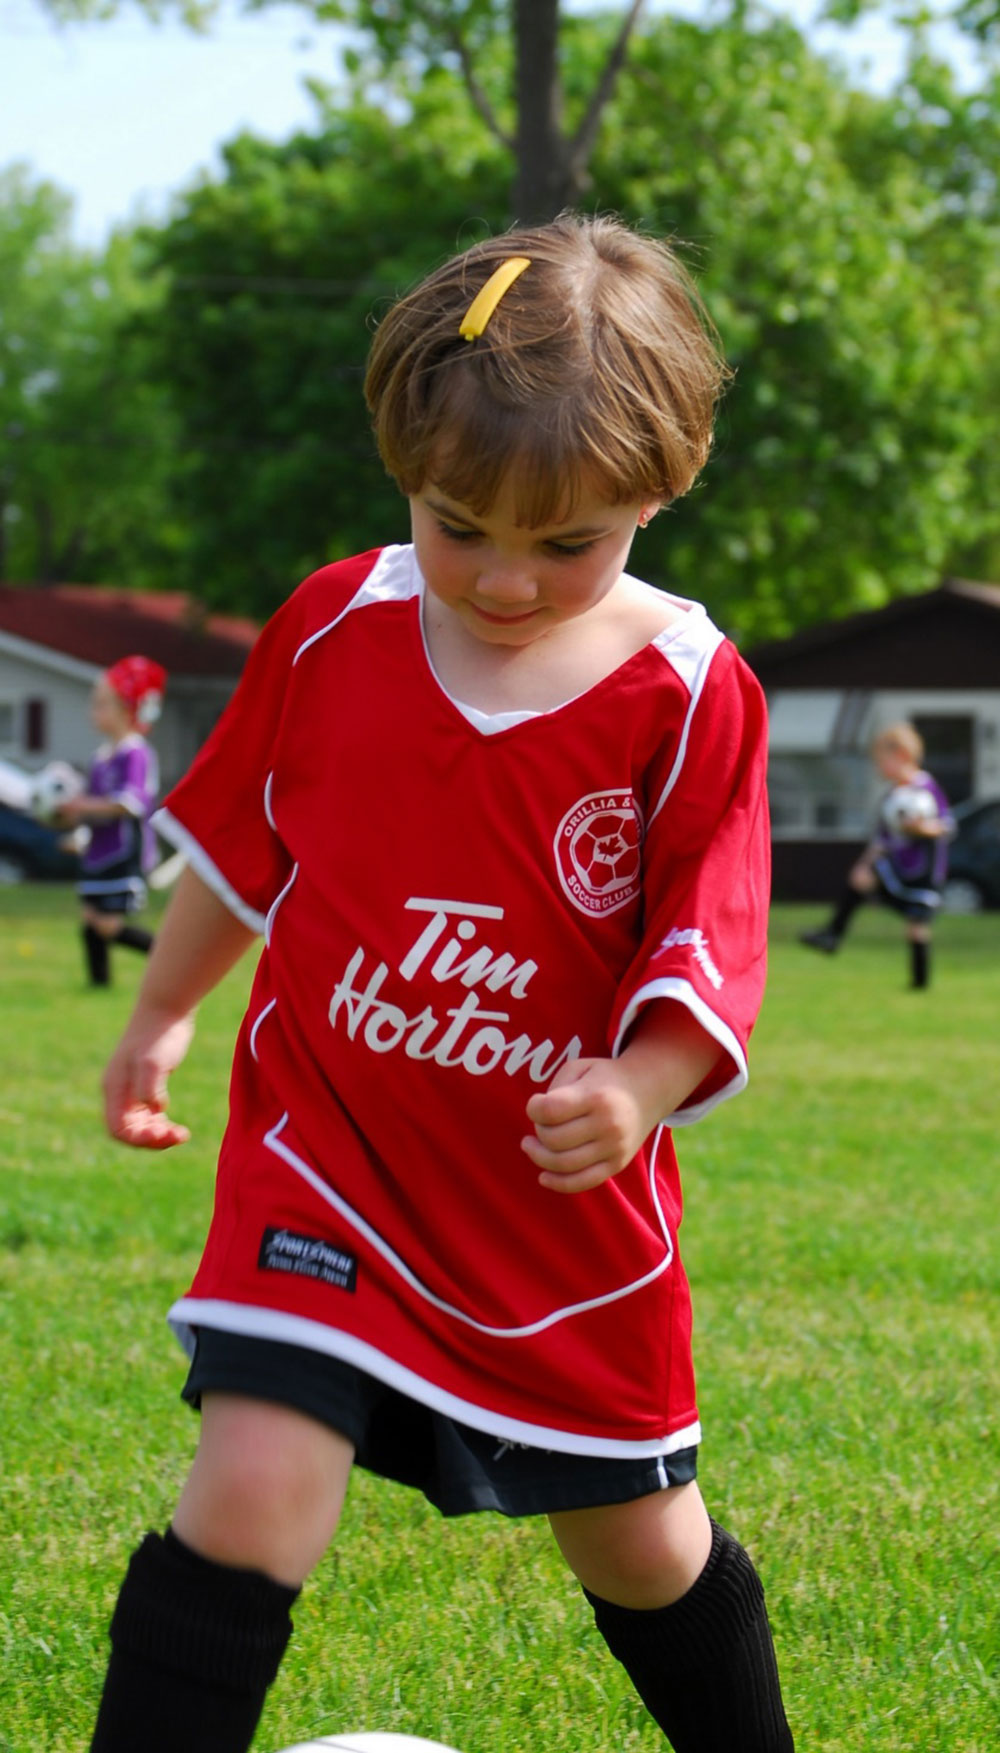 young child in red soccer uniform